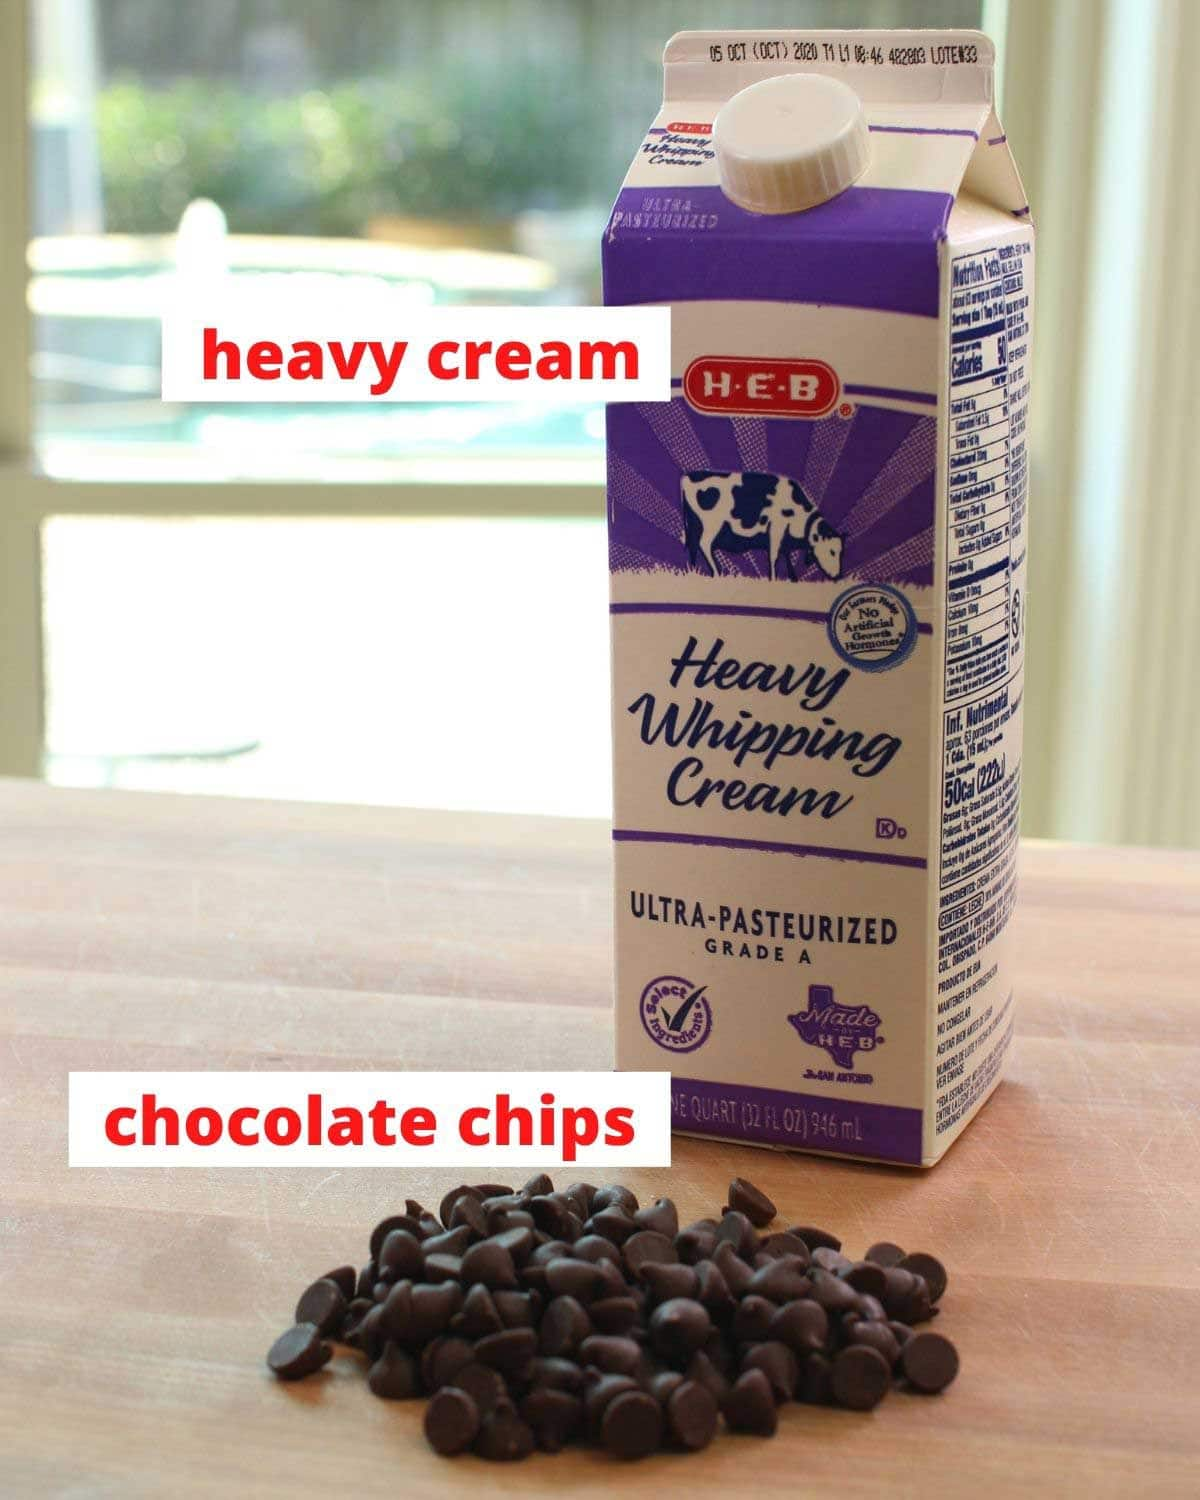 chocolate chips and a carton of heavy cream on a brown cutting board.